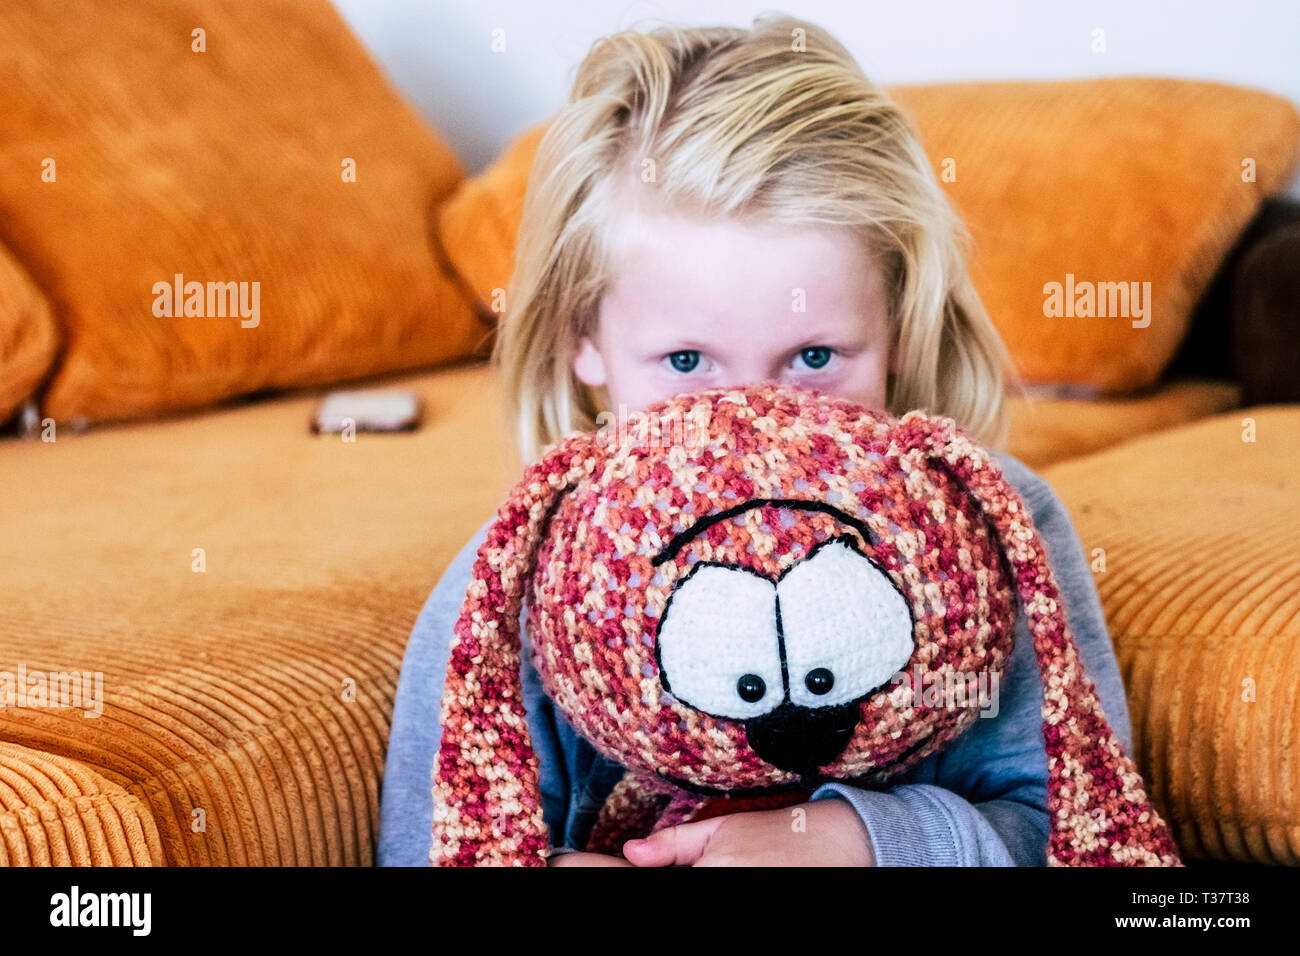 Young playful blonde caucasian children play with puppy at home - childhood lifestyle and colors in background Stock Photo